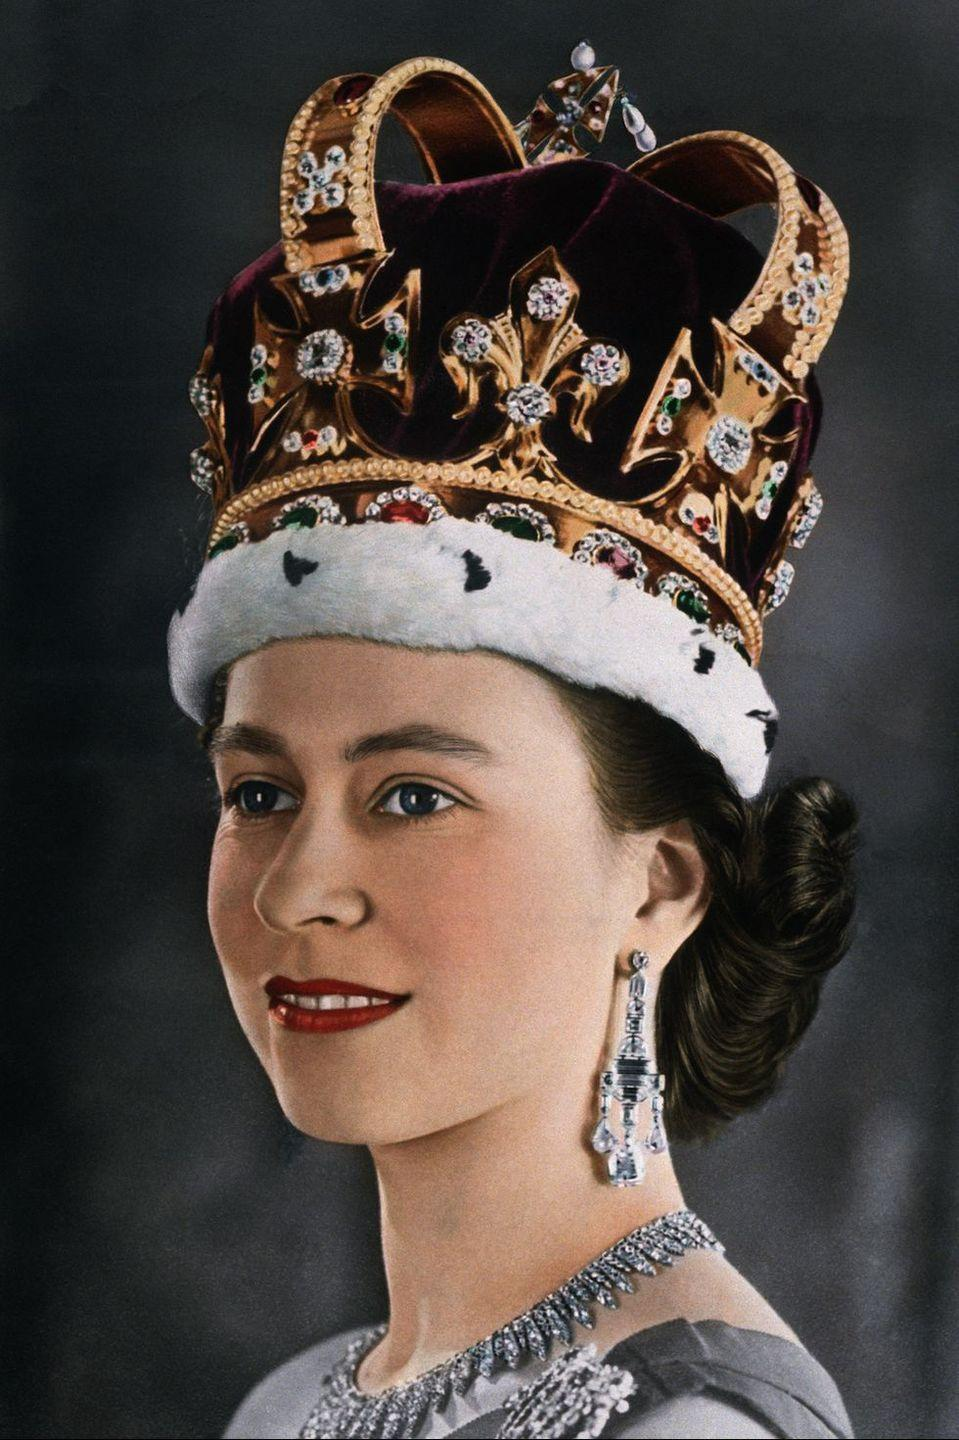 """<p>One perk of being the Queen: custom lipstick. Clarins created a special shade for the Queen in 1952 to match her coronation robes. She doesn't wear <a href=""""https://www.goodhousekeeping.com/beauty-products/lipsticks/g5085/matte-red-lipstick/"""" rel=""""nofollow noopener"""" target=""""_blank"""" data-ylk=""""slk:blue-red hues"""" class=""""link rapid-noclick-resp"""">blue-red hues</a> very often now, but the good news is you don't need a title to make your own anymore. Brands like <a href=""""https://www.bitebeauty.com/lip-labs"""" rel=""""nofollow noopener"""" target=""""_blank"""" data-ylk=""""slk:Bite Beauty"""" class=""""link rapid-noclick-resp"""">Bite Beauty</a> and <a href=""""https://www.findingferdinand.com/products/custom-lipstick-sample"""" rel=""""nofollow noopener"""" target=""""_blank"""" data-ylk=""""slk:Finding Ferdinand"""" class=""""link rapid-noclick-resp"""">Finding Ferdinand</a> currently offer <a href=""""https://www.goodhousekeeping.com/beauty/makeup/a47912/good-housekeeping-lipstick-rose-glow/"""" rel=""""nofollow noopener"""" target=""""_blank"""" data-ylk=""""slk:bespoke shades"""" class=""""link rapid-noclick-resp"""">bespoke shades</a> for surprisingly non-royal prices. </p>"""